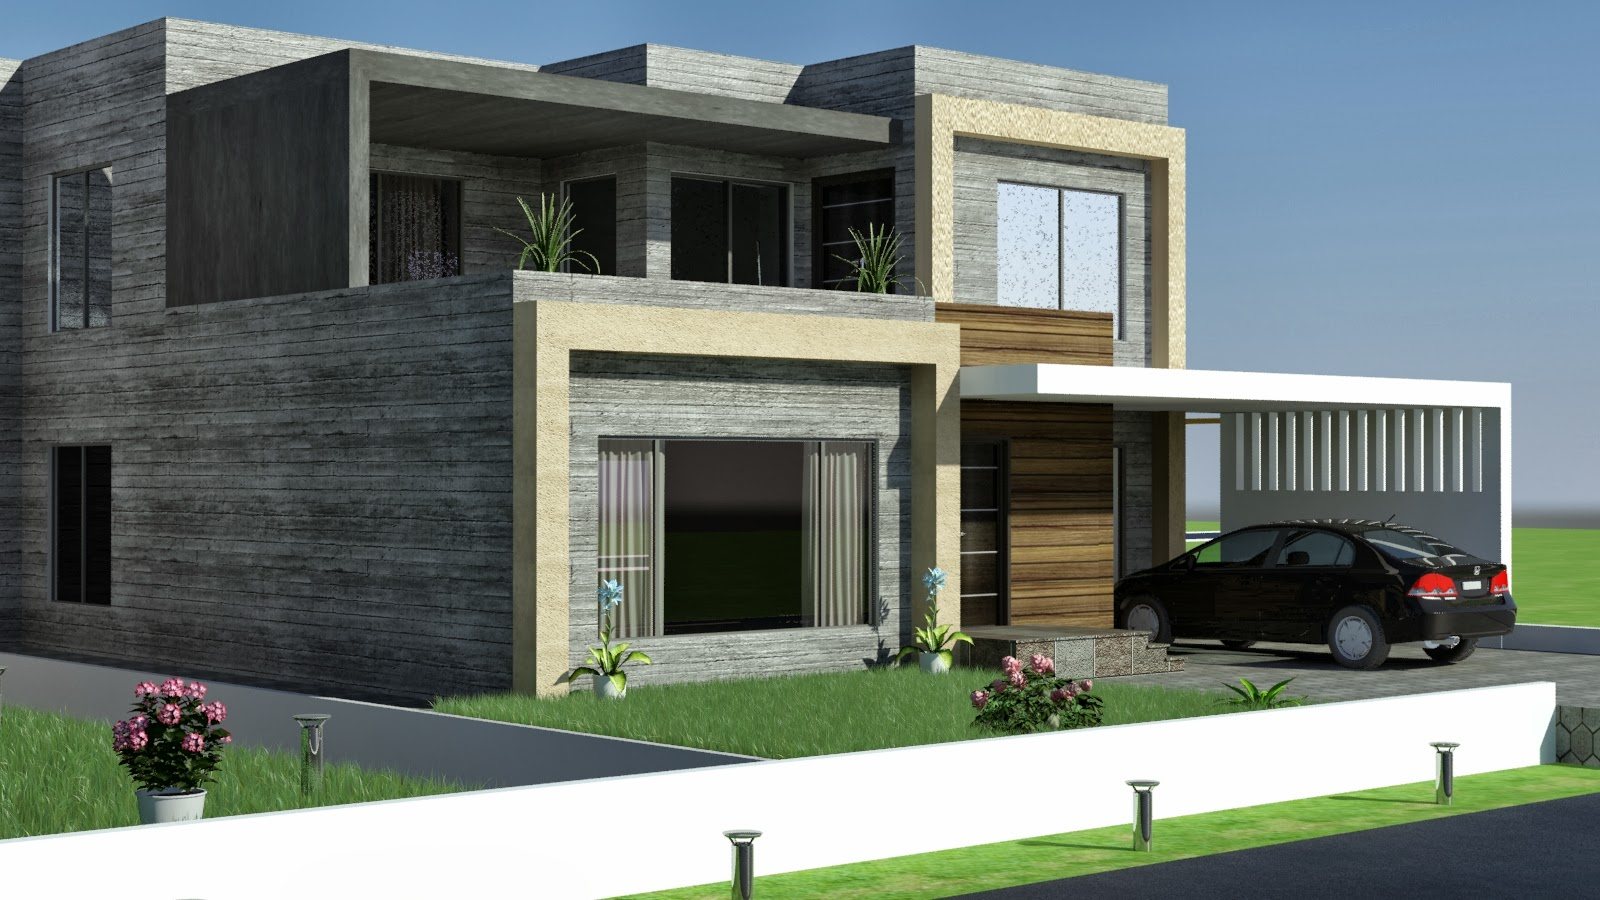 3D Front Elevation.com: 1 Kkanal Old Design Convert to Modern ...